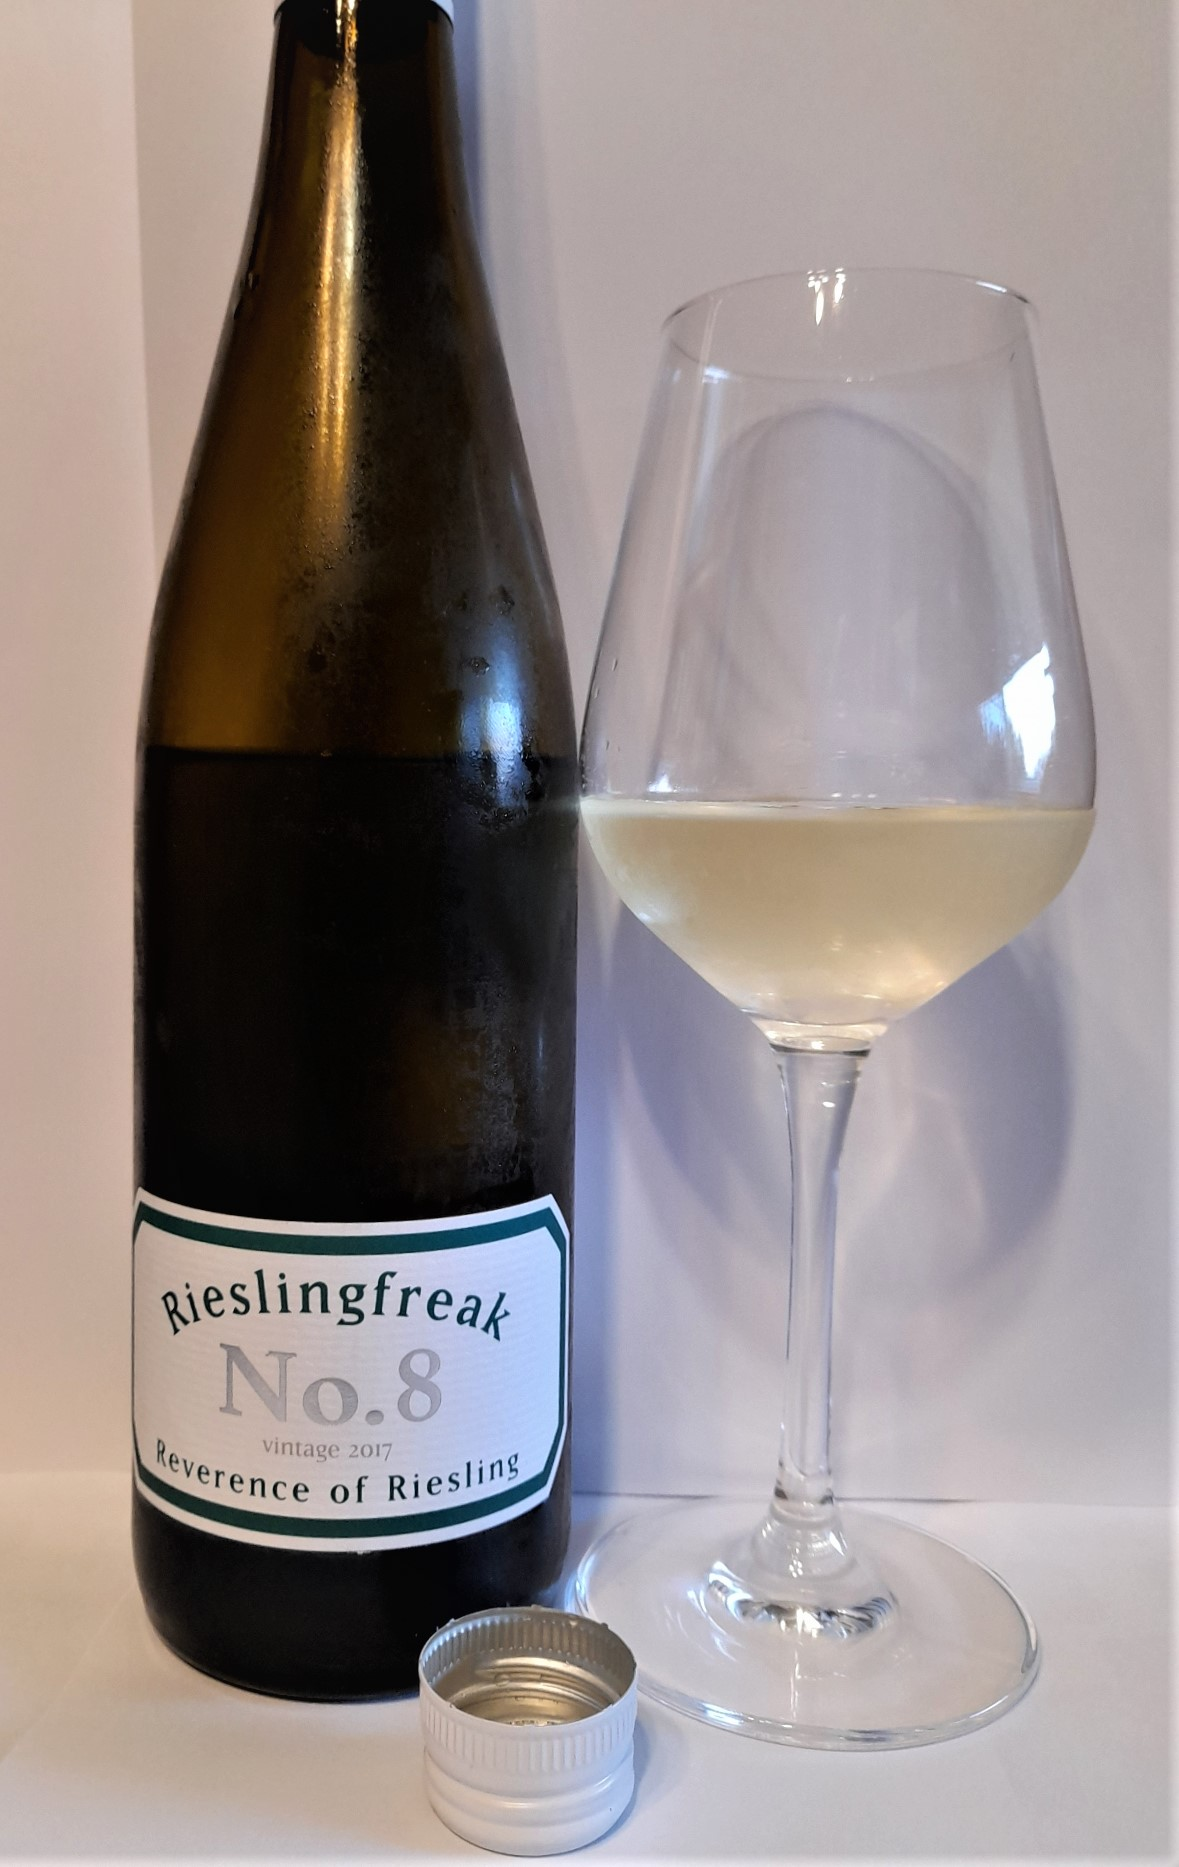 2017 rieslingfreak #8